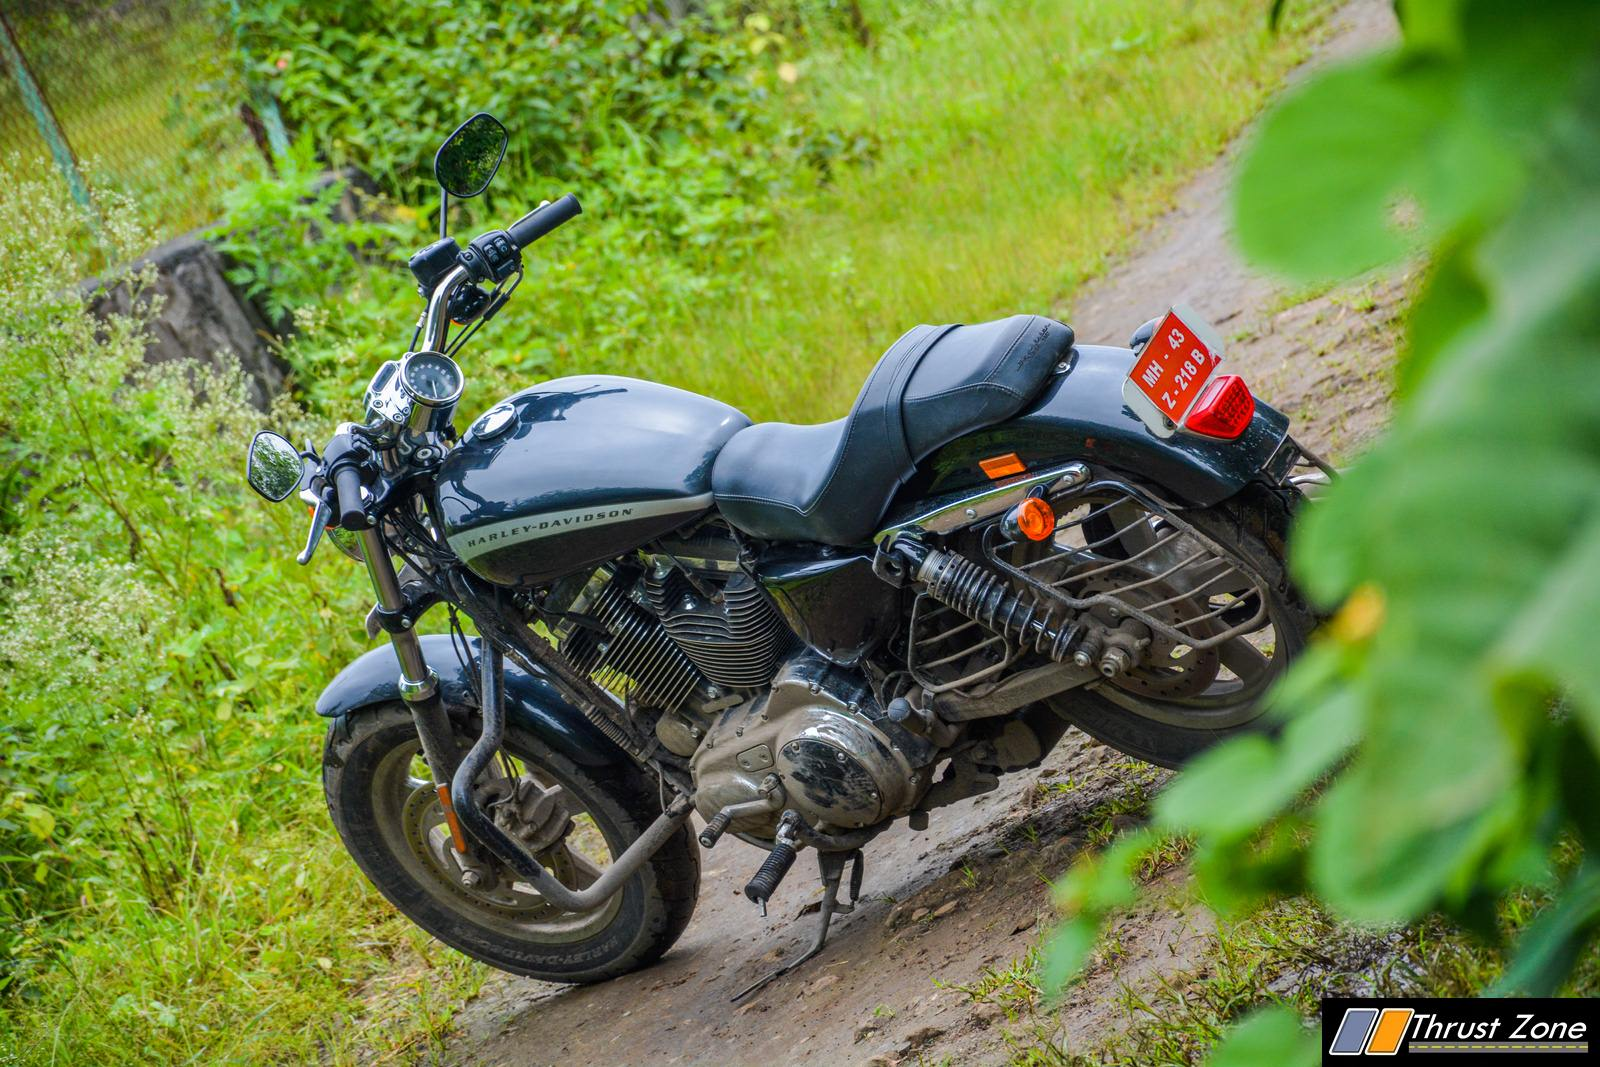 2018-Harley-Custom-1200-India-Review-8